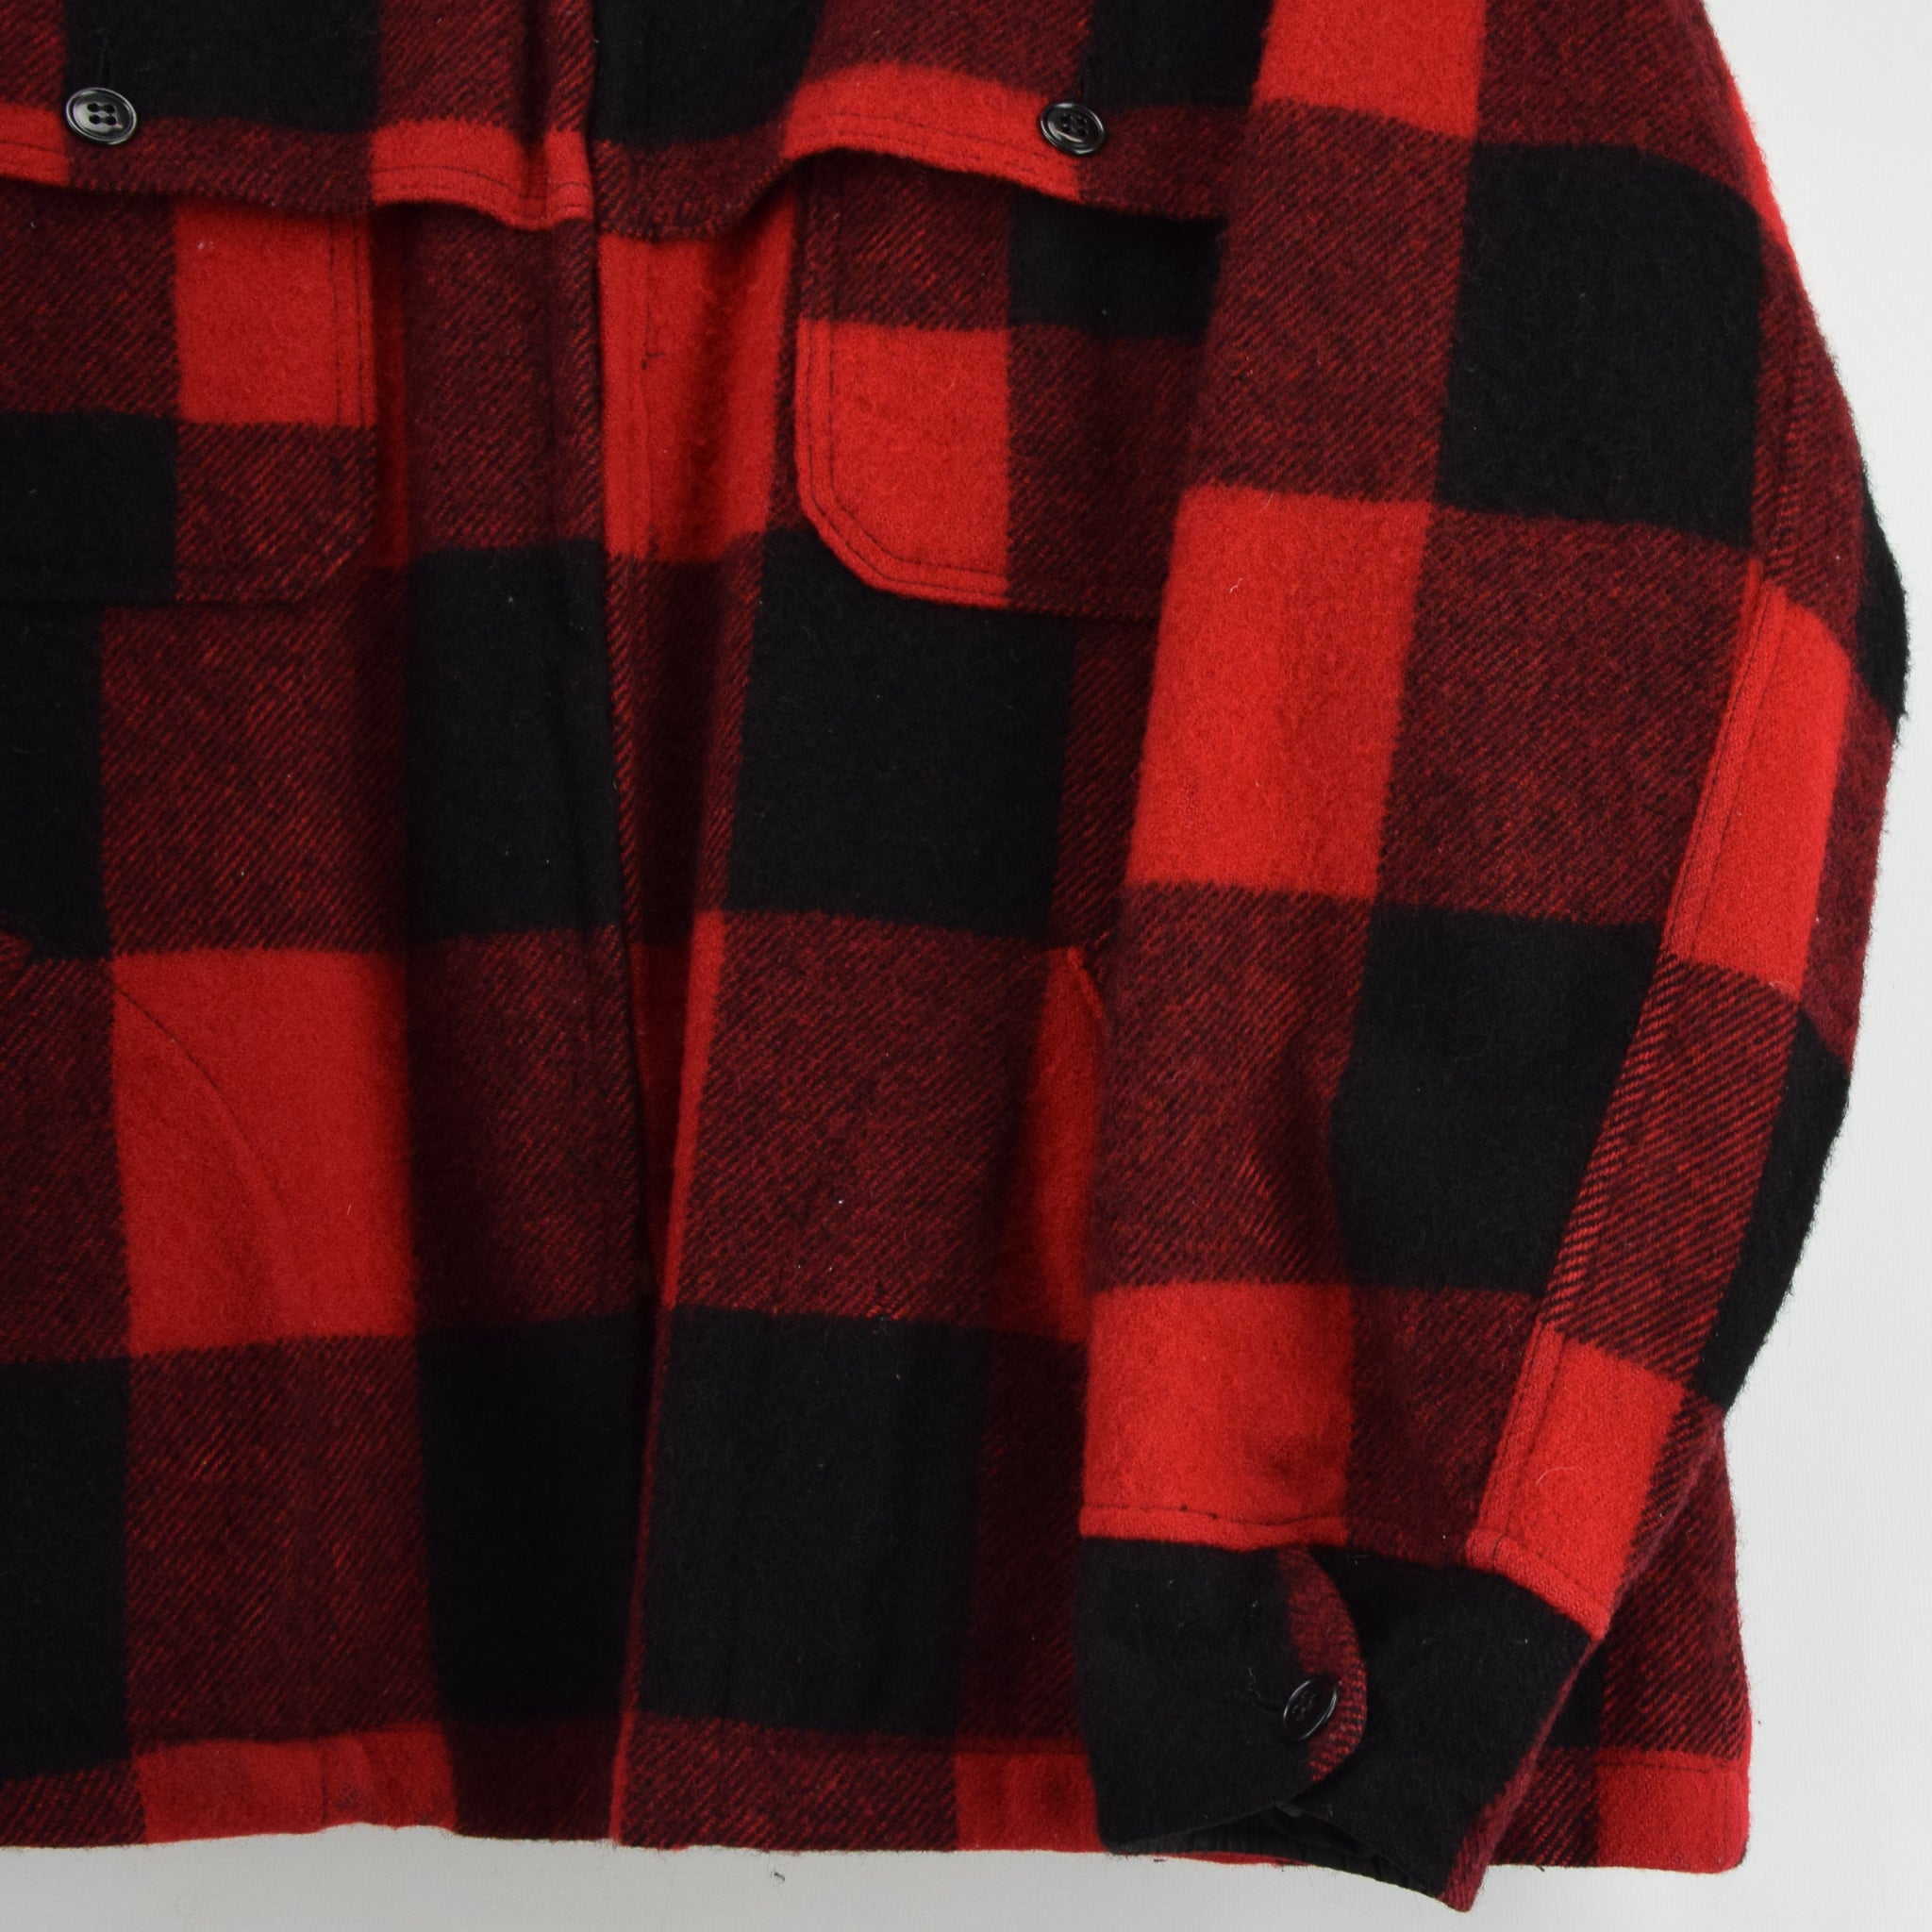 Vintage 70s Woolrich Buffalo Plaid Hunting Mackinaw Shirt Jacket Made in USA XXL front hem